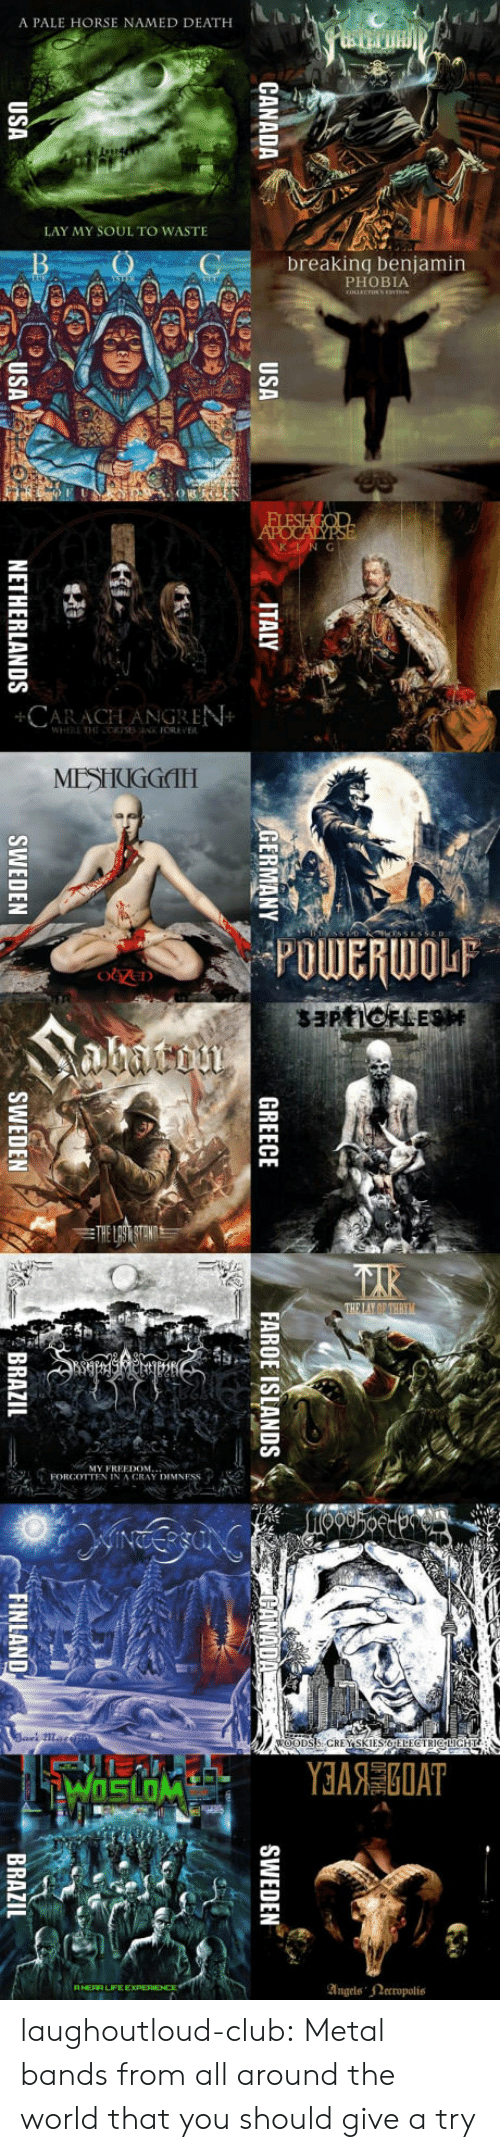 Paling: A PALE HORSE NAMED DEATH  LAY MY SOUL TO WASTE  breaking benjamin  PHOBIA  CARACLLANGREN  MESIIIGGITH  POWERWOLP  MY FREEDOM  FORCCTTEN IN A CRAY DIMNF  ANERA LIFEE  Angels ectopolis laughoutloud-club:  Metal bands from all around the world that you should give a try